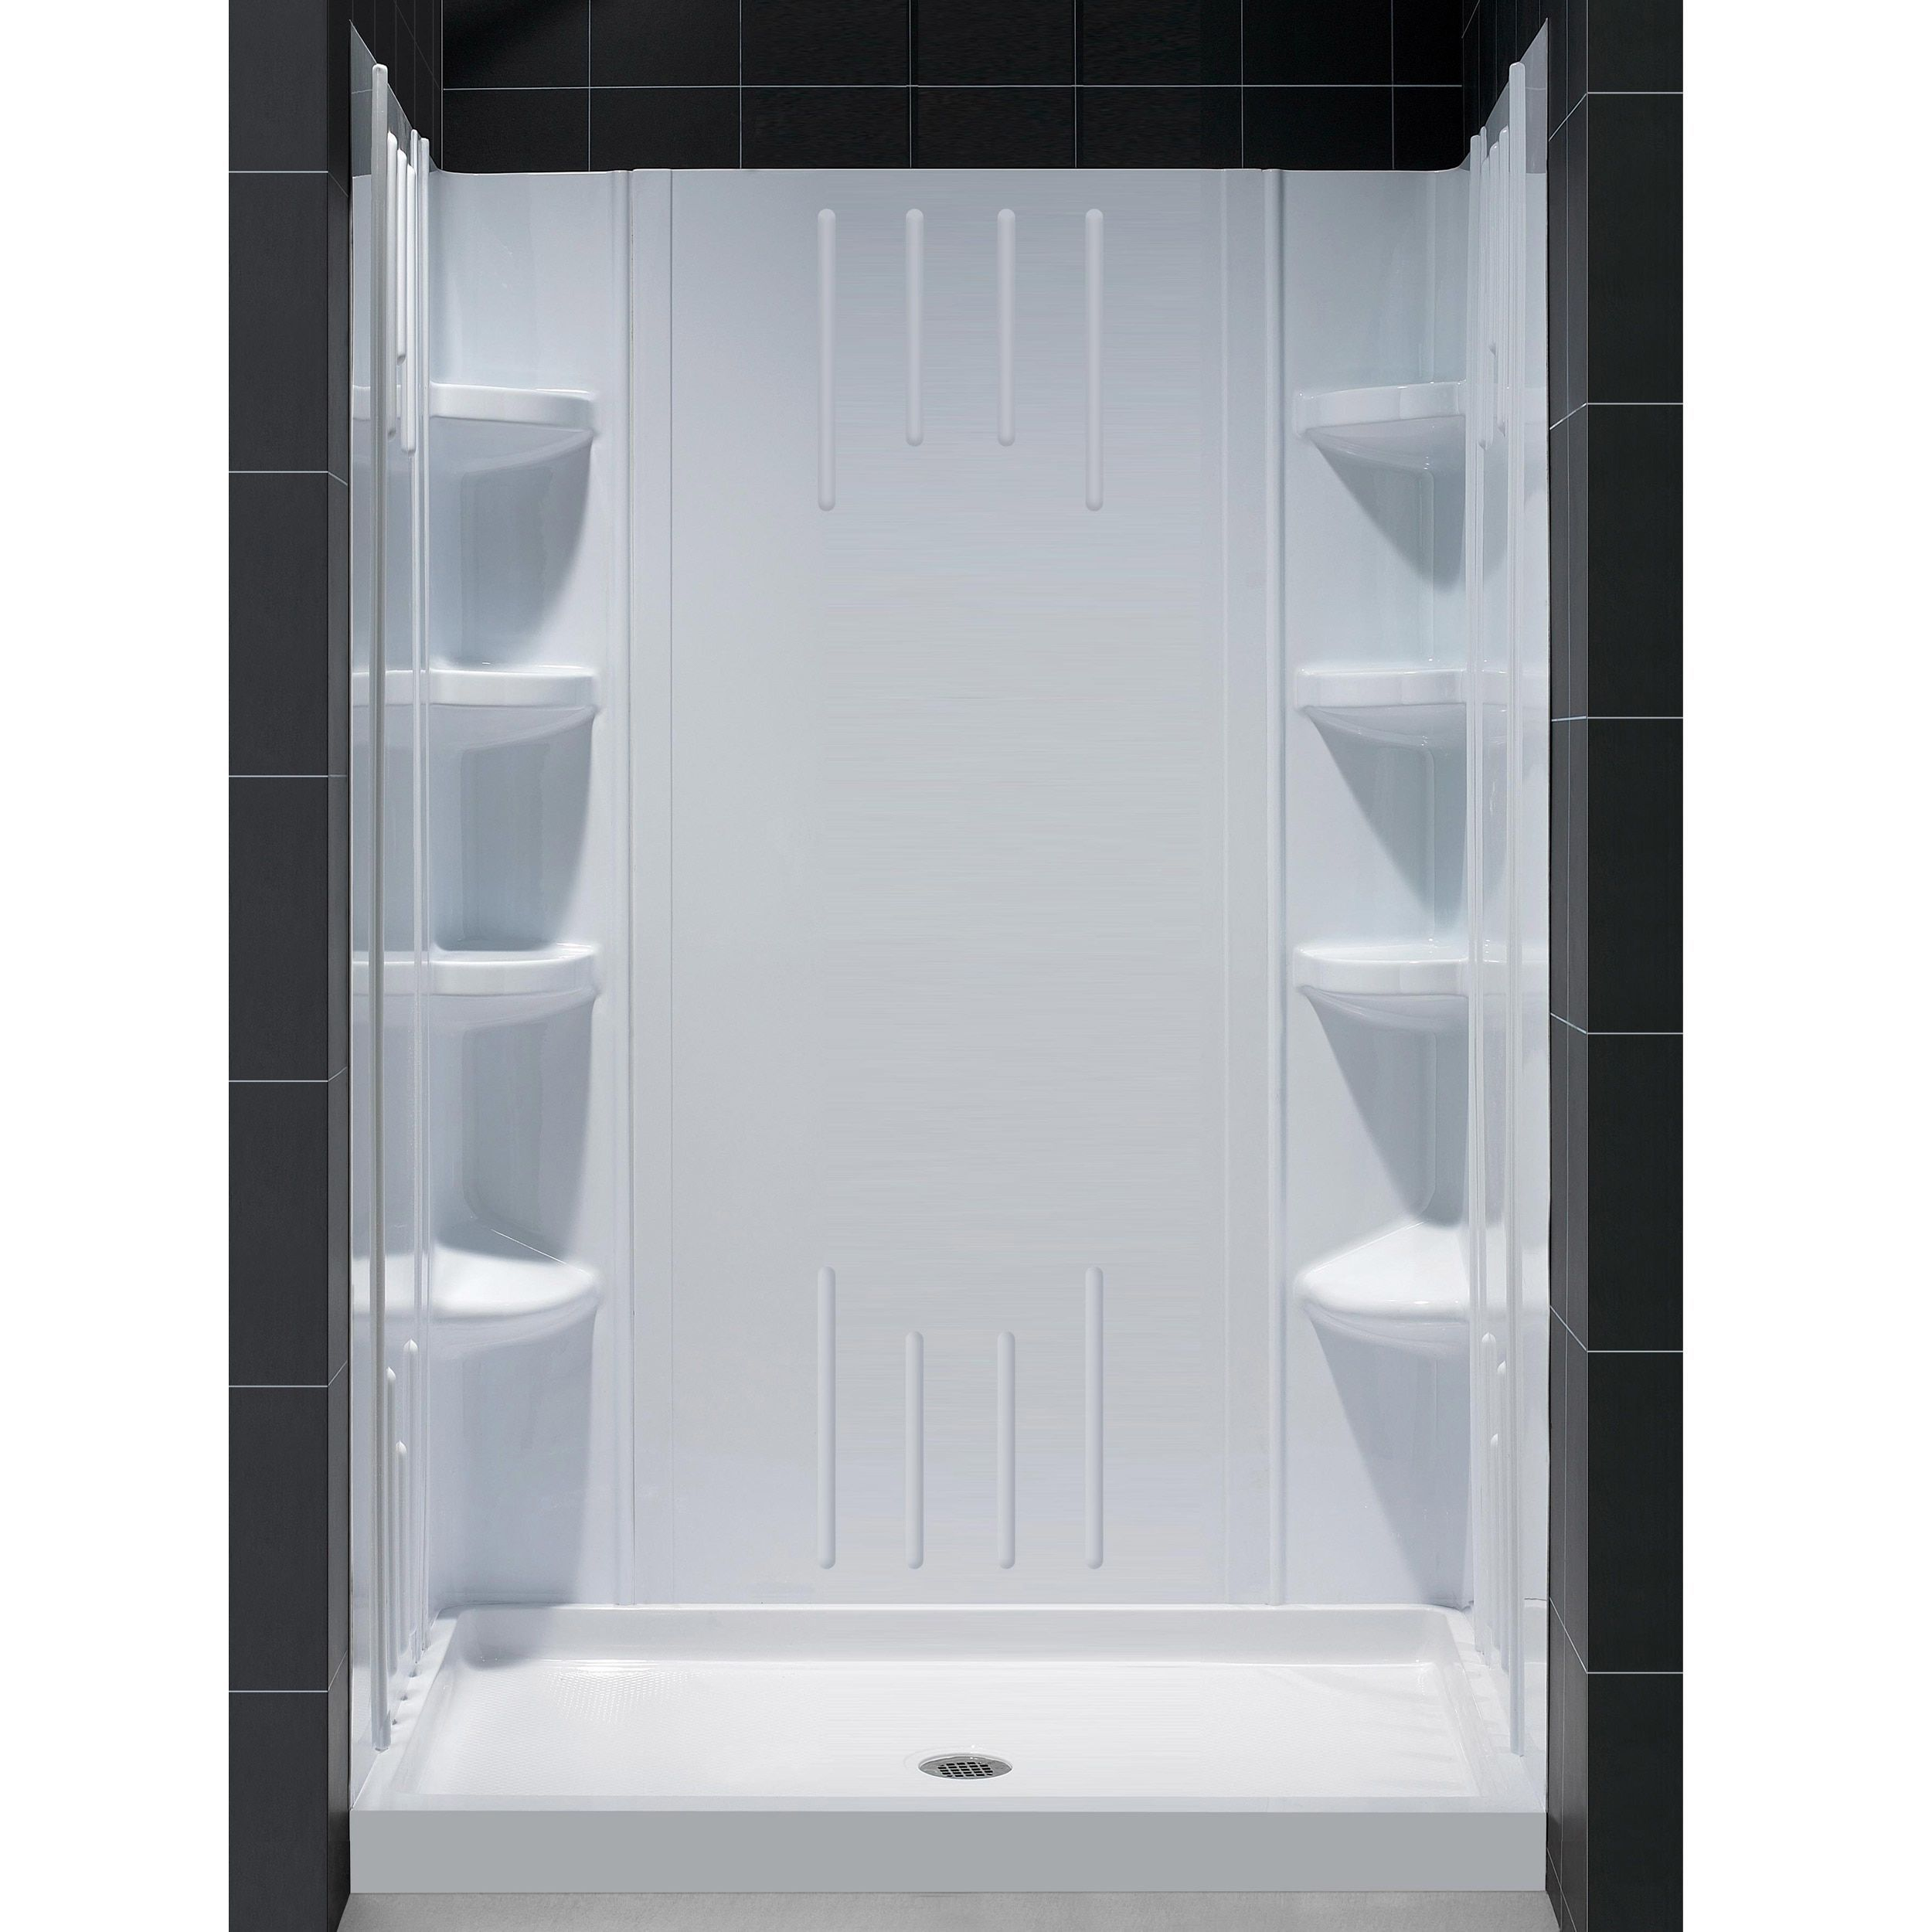 Dreamline Slimline 36 In By 48 In Single Threshold Shower Base